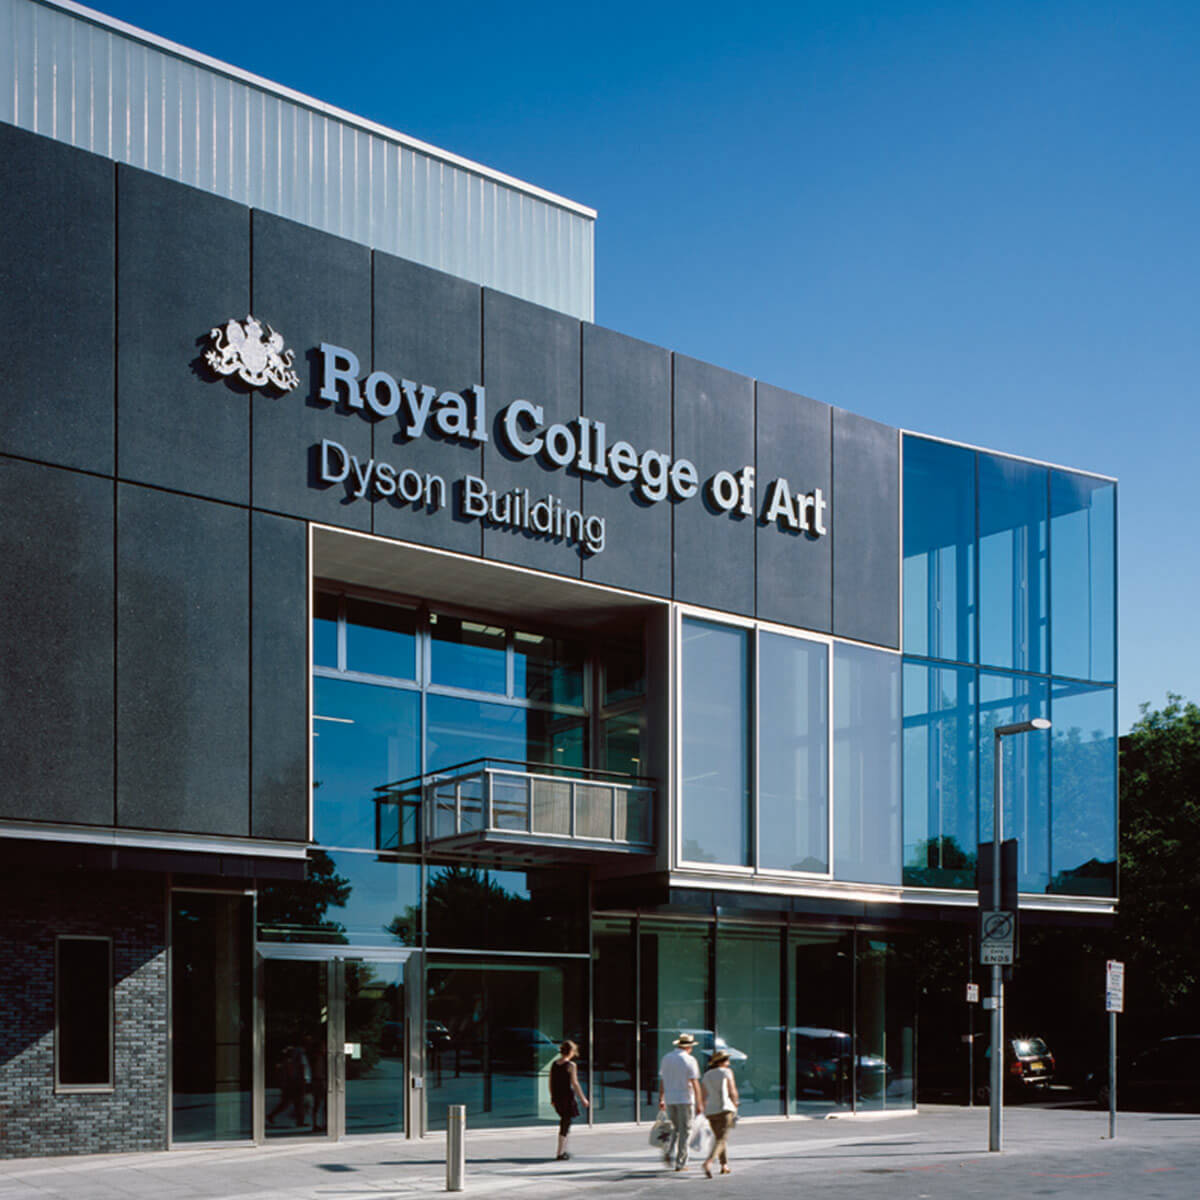 Dyson Building at the Royal College of Art